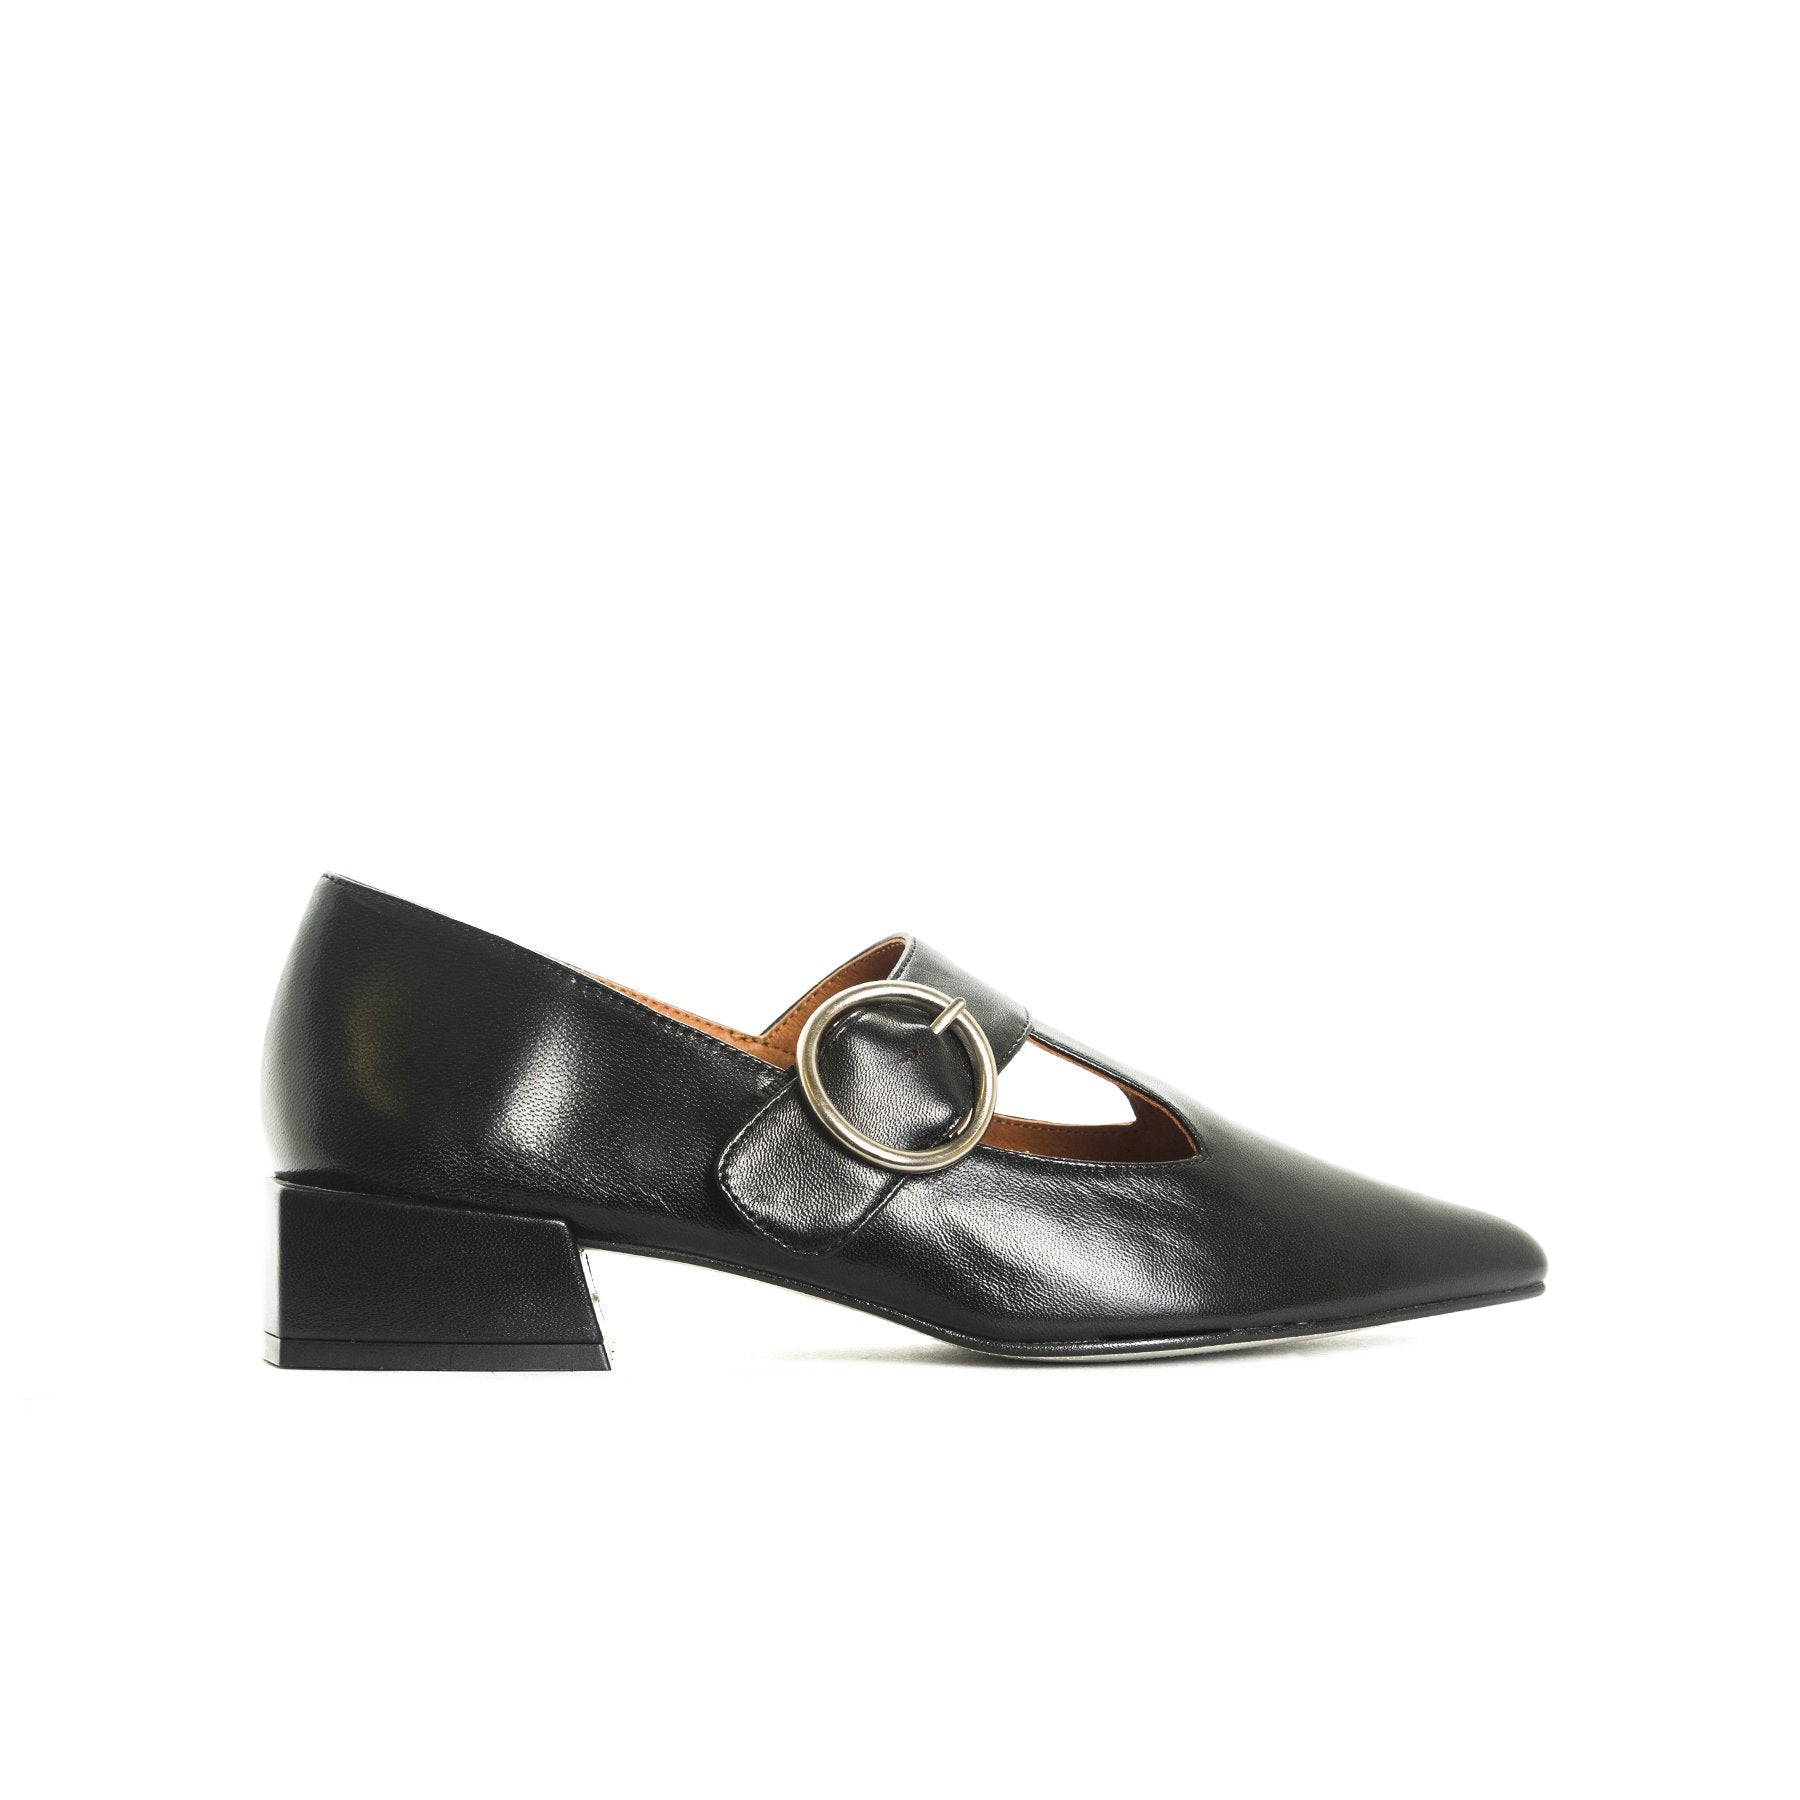 Gilmore Black Leather Shoes